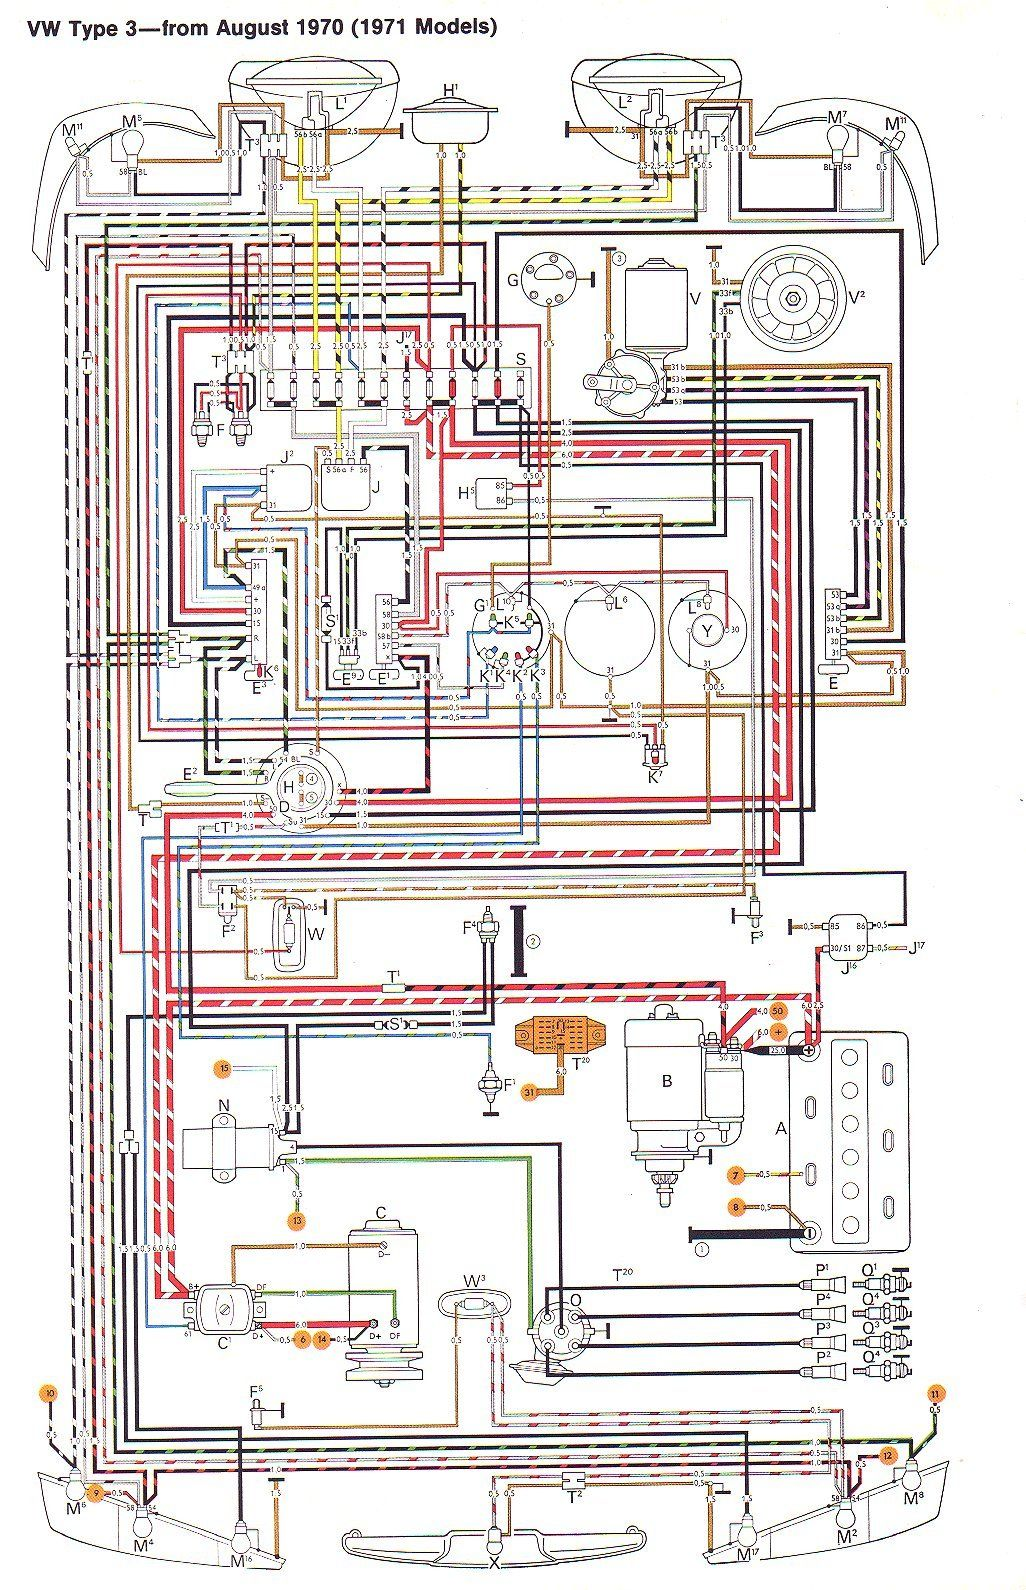 1968 vw type 1 wiring diagram truss style 71 t3 ruthie pinterest cars beetles and